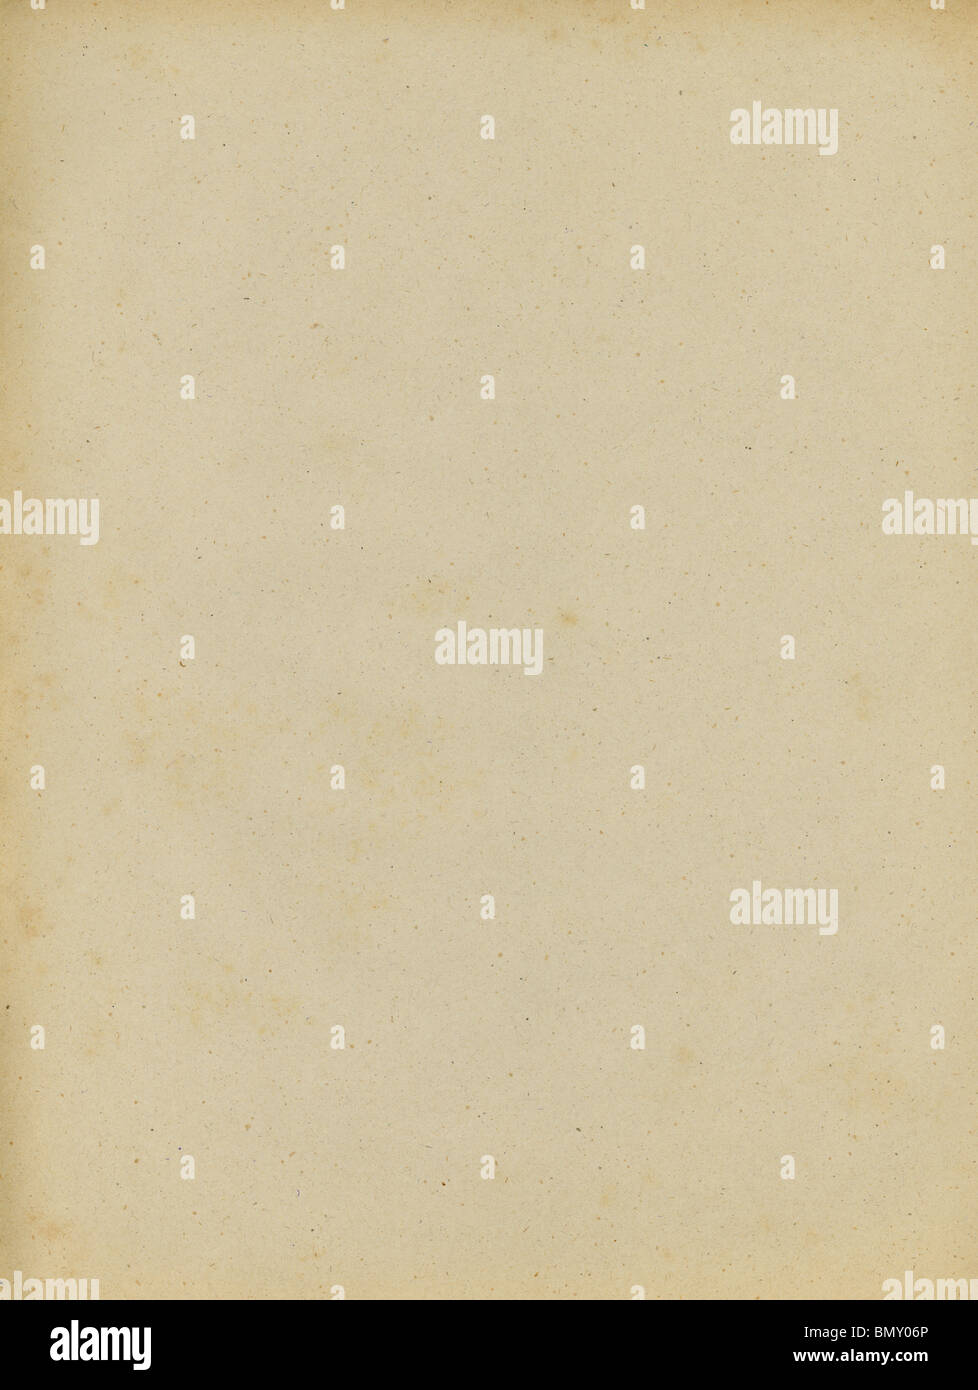 scan of old paper texture background - Stock Image